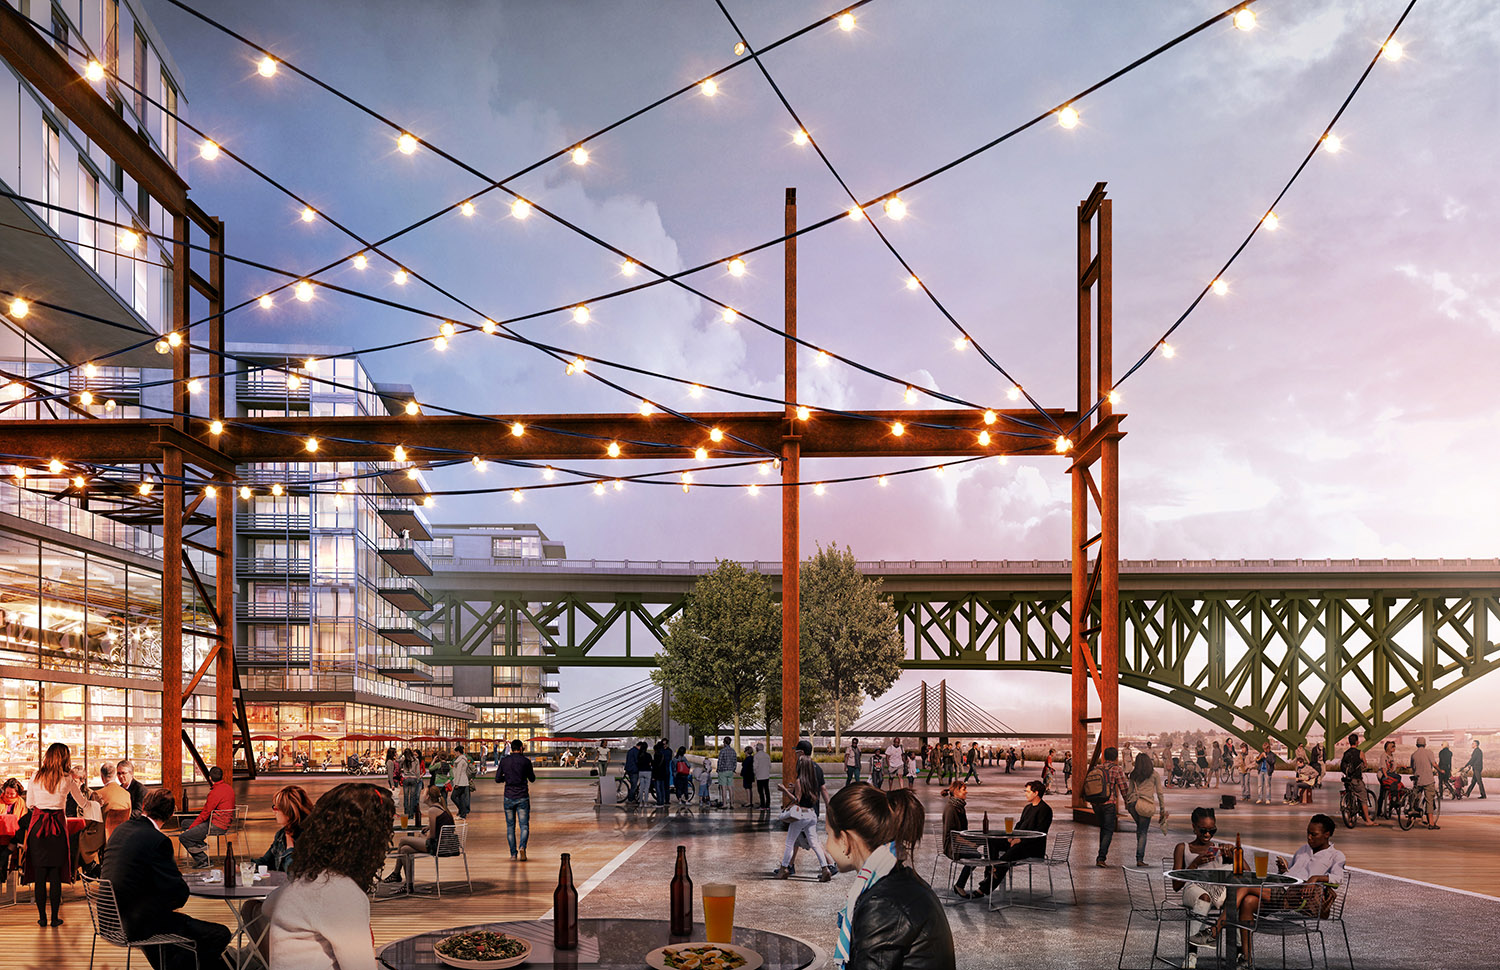 The once privitized industrial edge is now a destination place along the newly created greenway along the riverfront edge. The industrial heritage is drawn into the setting as the place evolves into a new